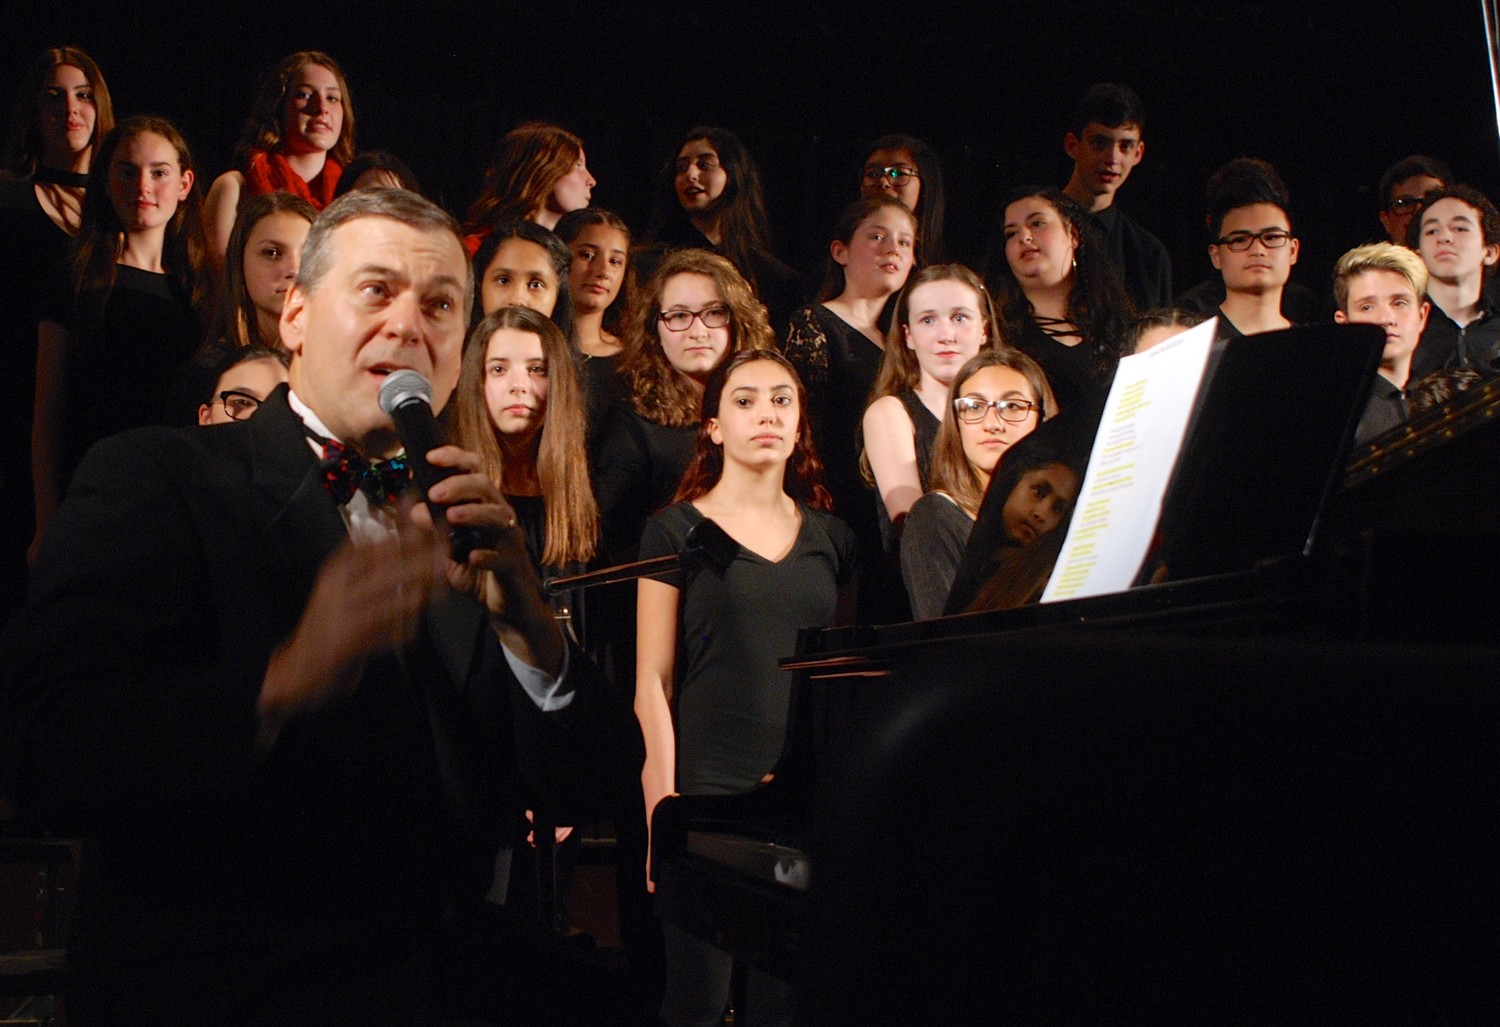 Richard Gilley led a final concert at Merrick Avenue Middle School in May, as he bade farewell to the school where he taught music for 25 years.